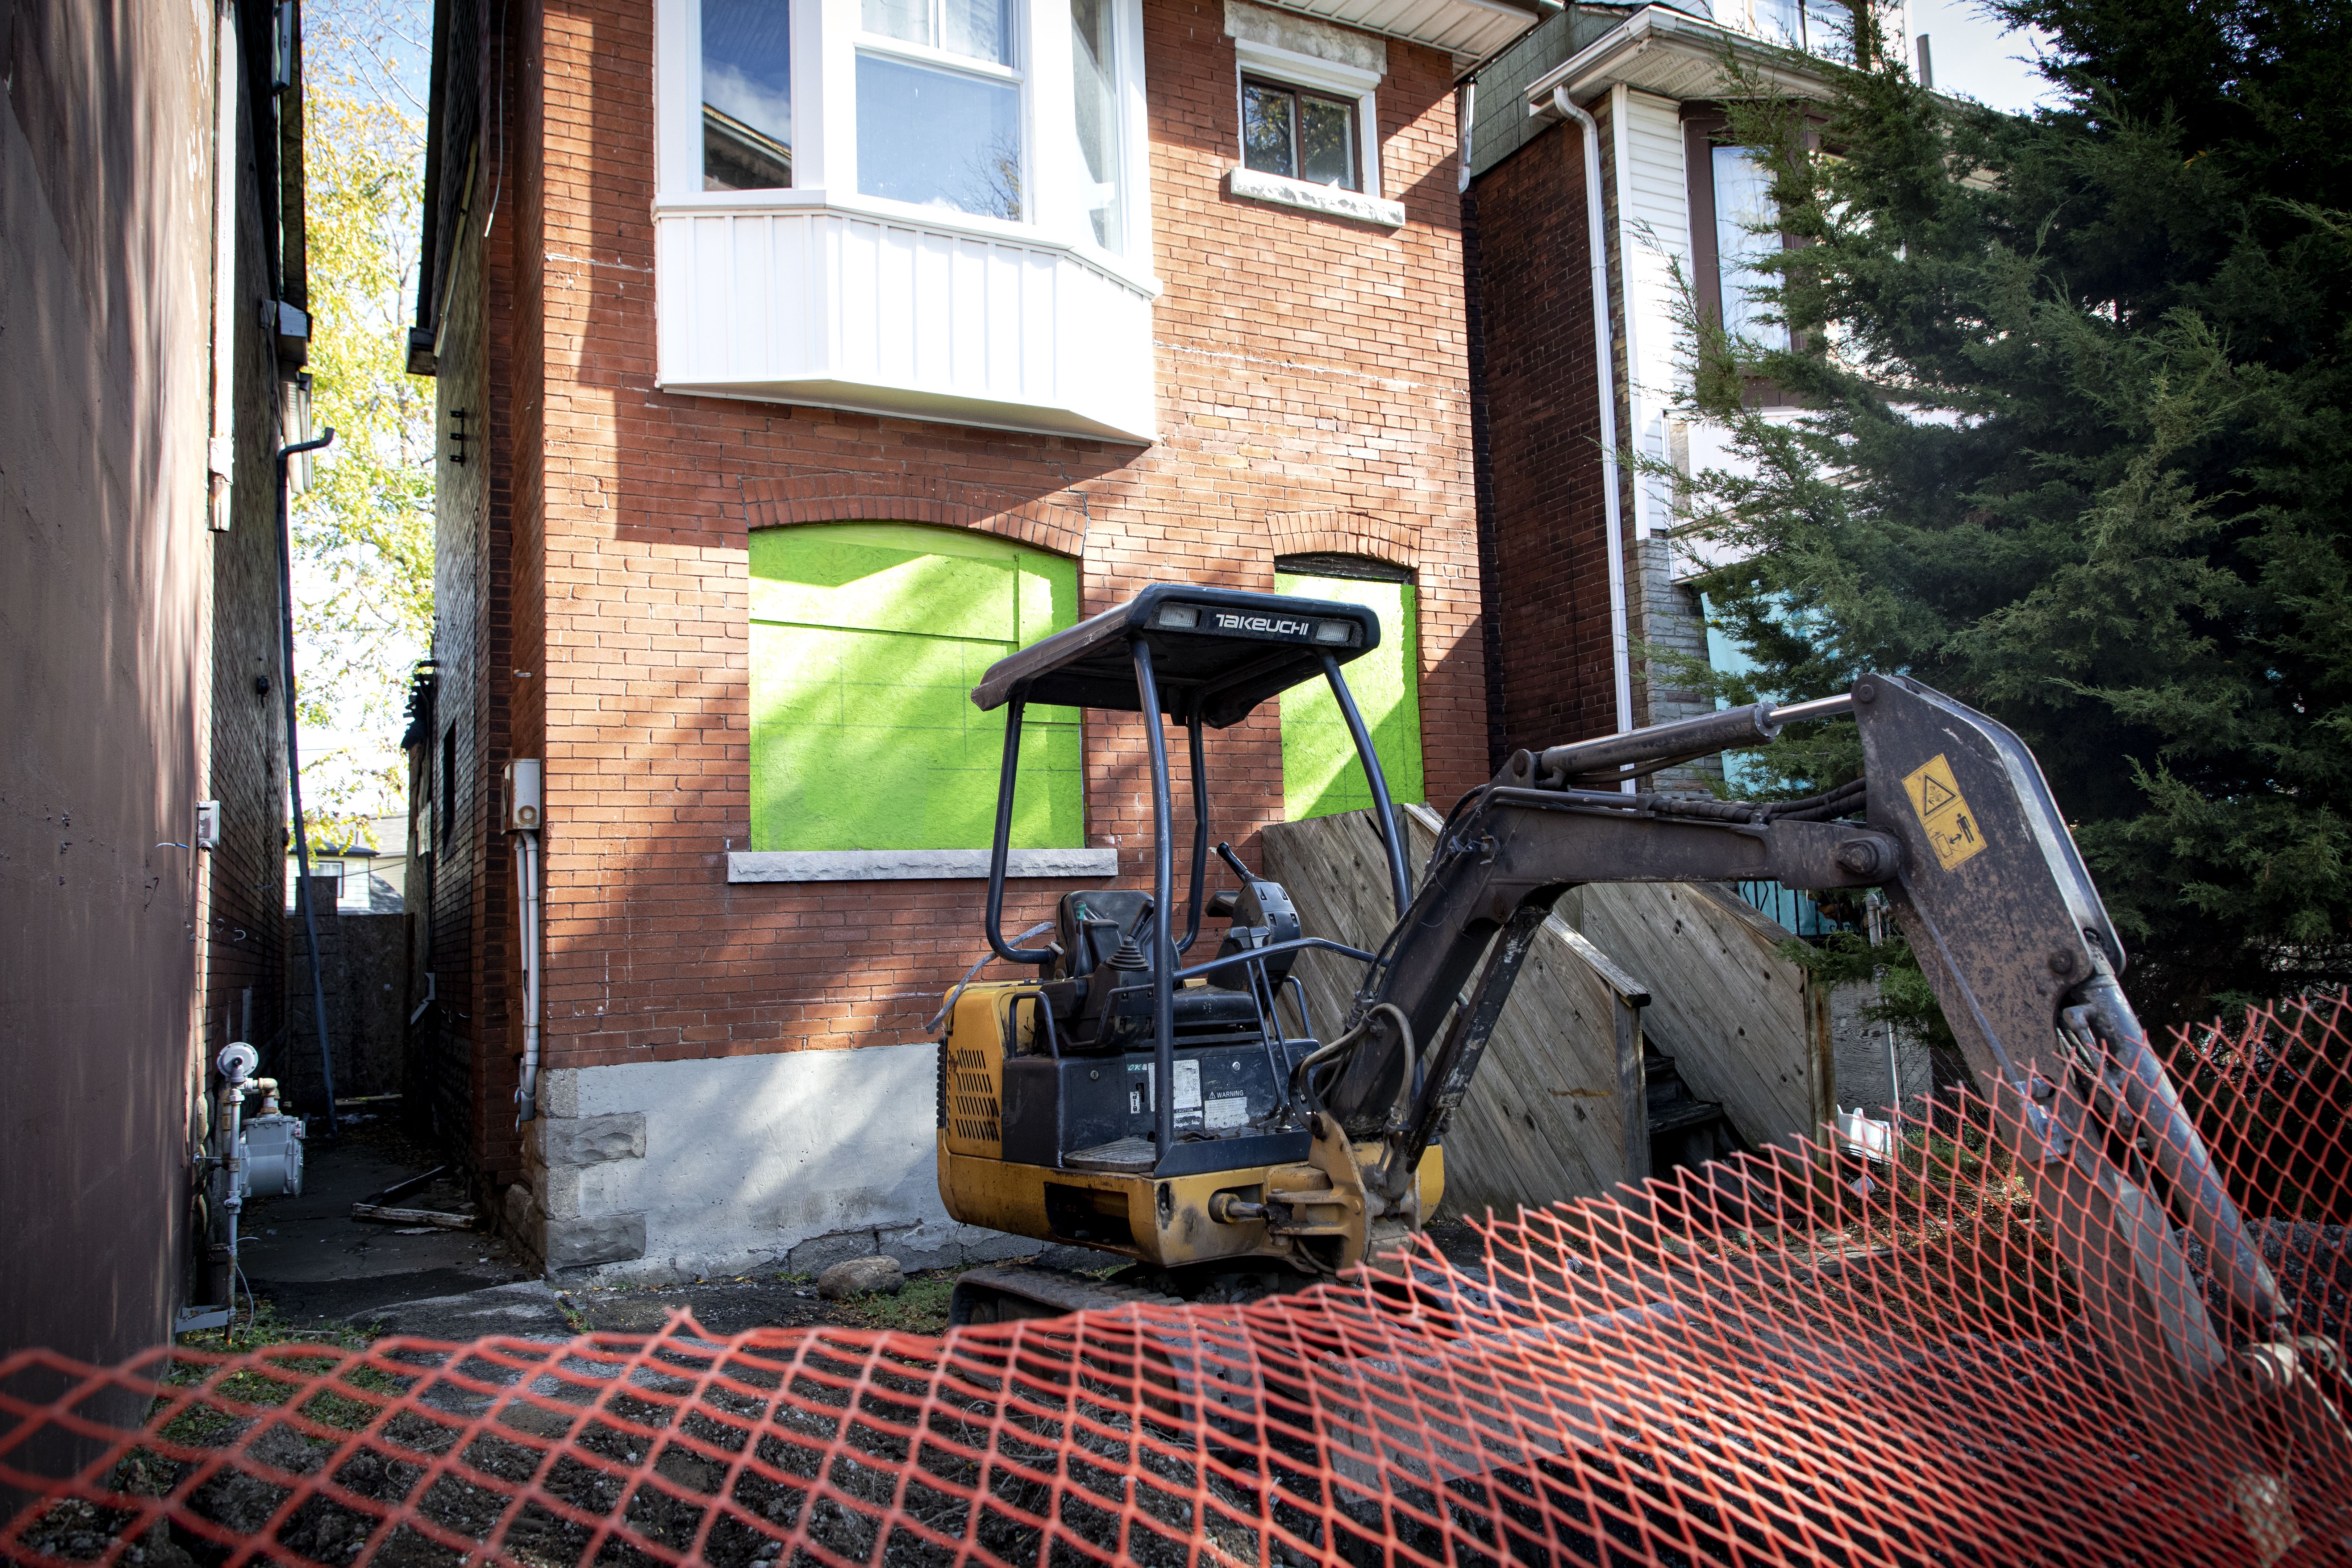 Image shows a tractor in front of a property.